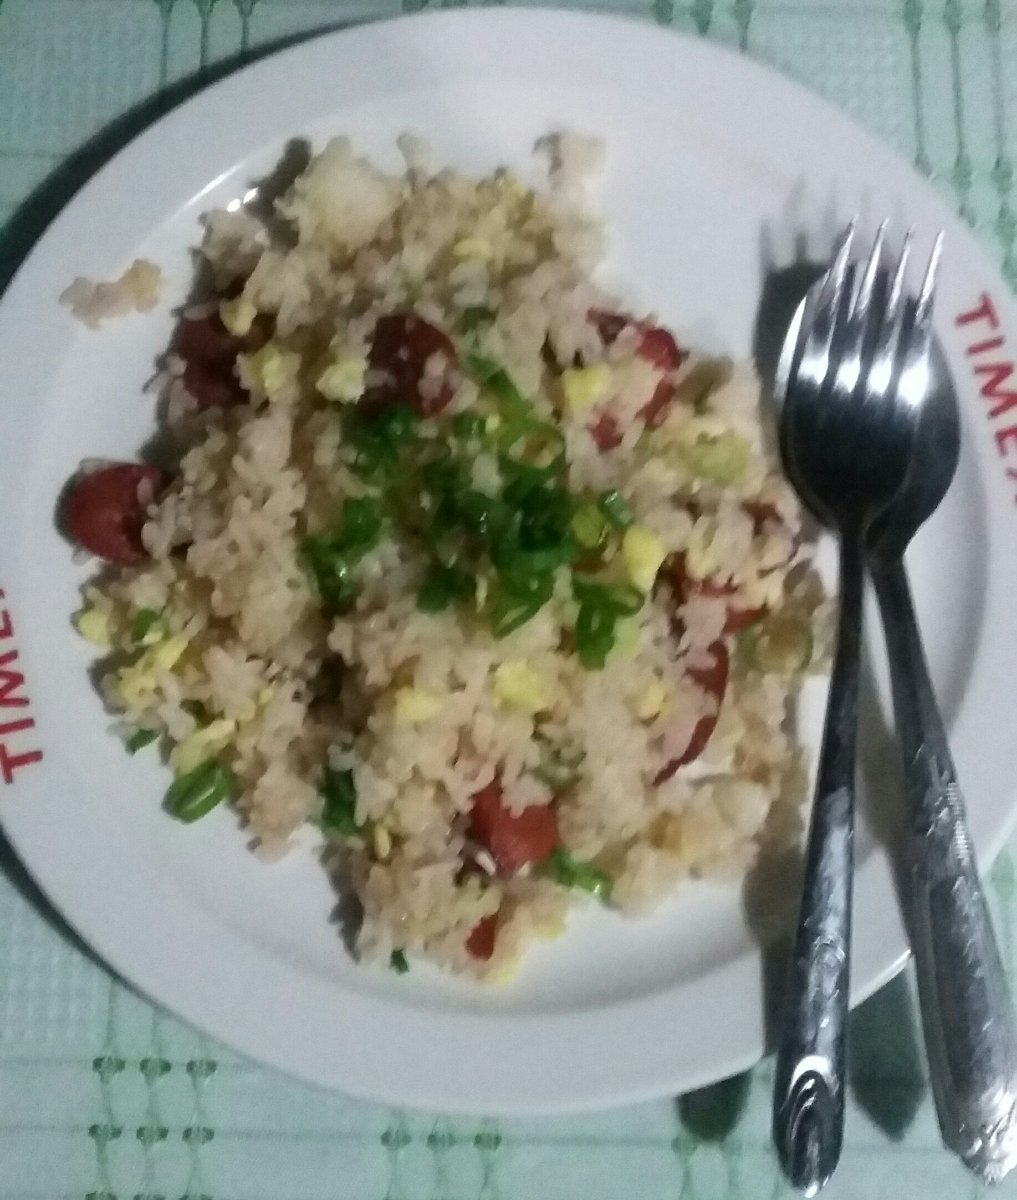 Specialty for my brother, fried rice with green onions